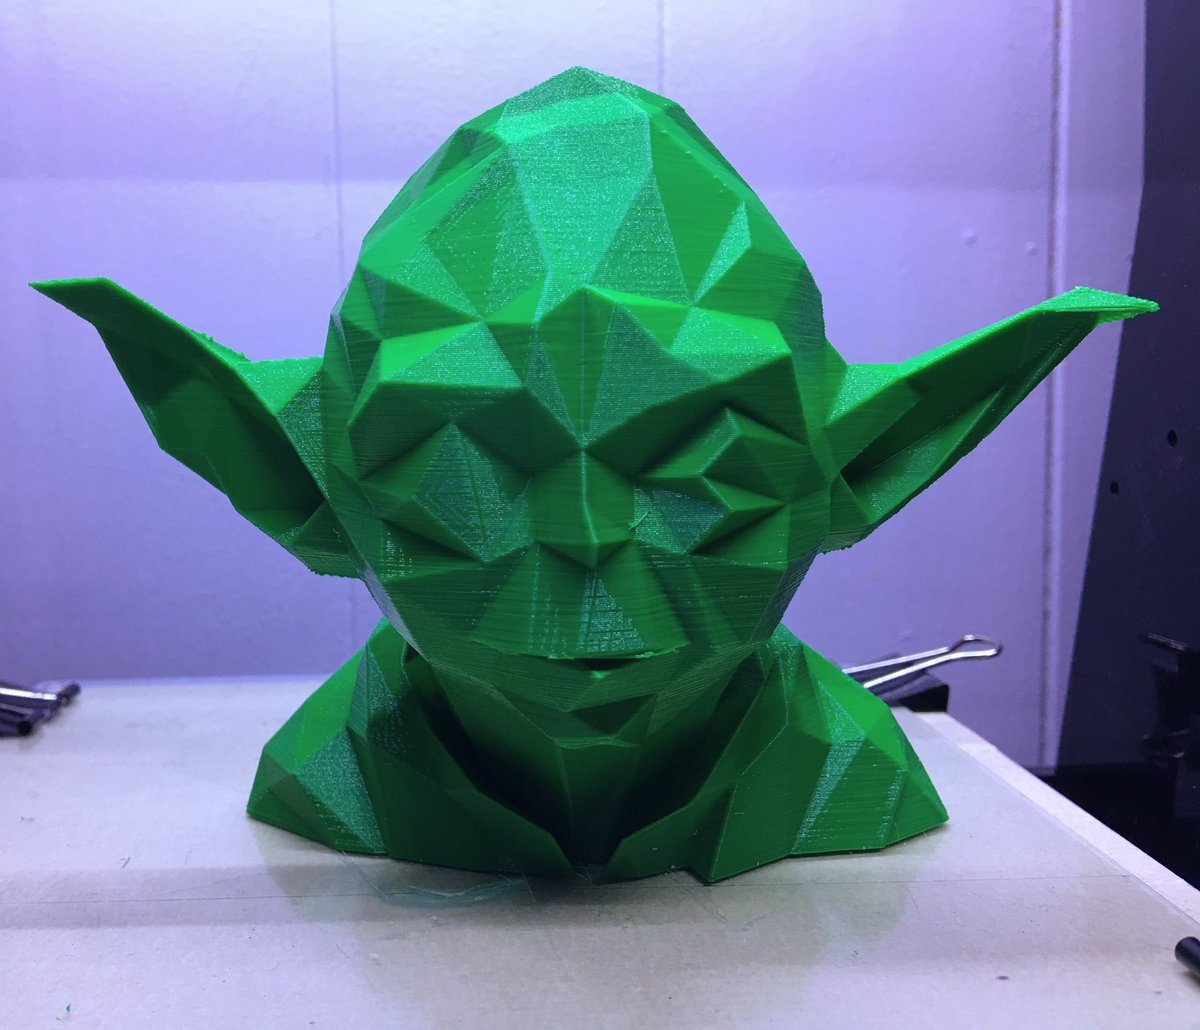 #yoda is complete! I like the rainforest green #pla color @protoparadigm #5dollarfilament #3dprinting #3dprint #anet #a8 #starwars <br>http://pic.twitter.com/5OvRRGeRGU